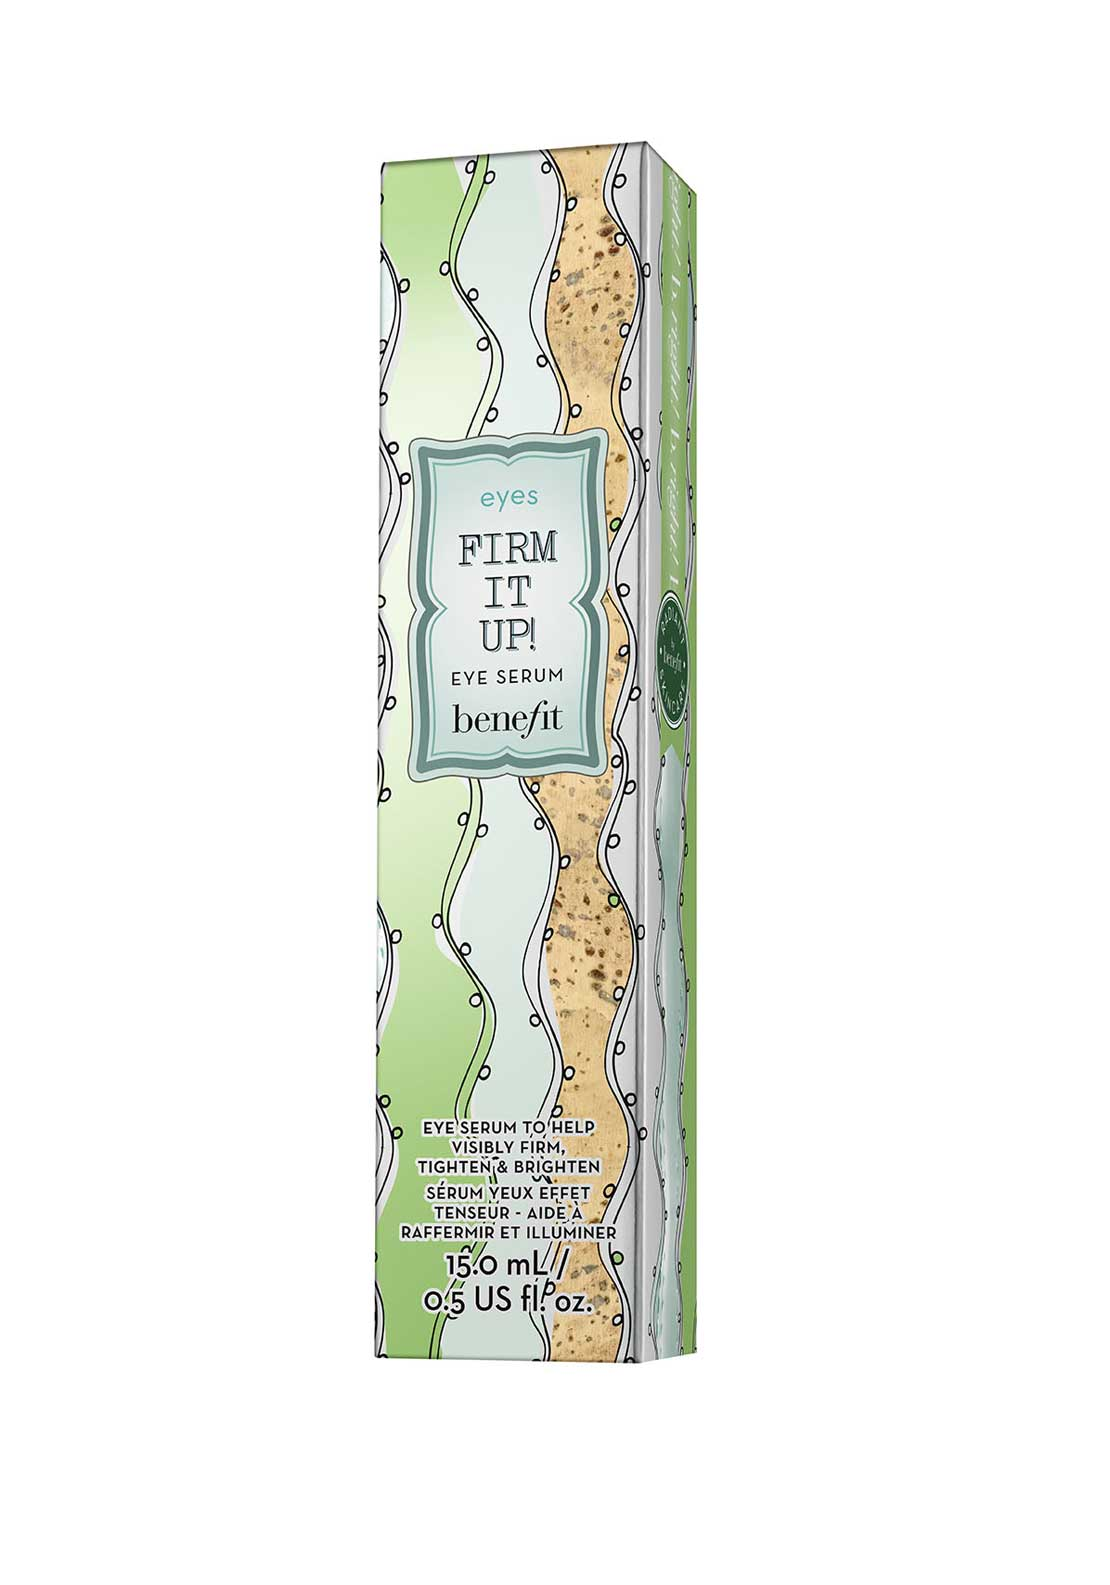 Benefit Firm It Up Eye Serum